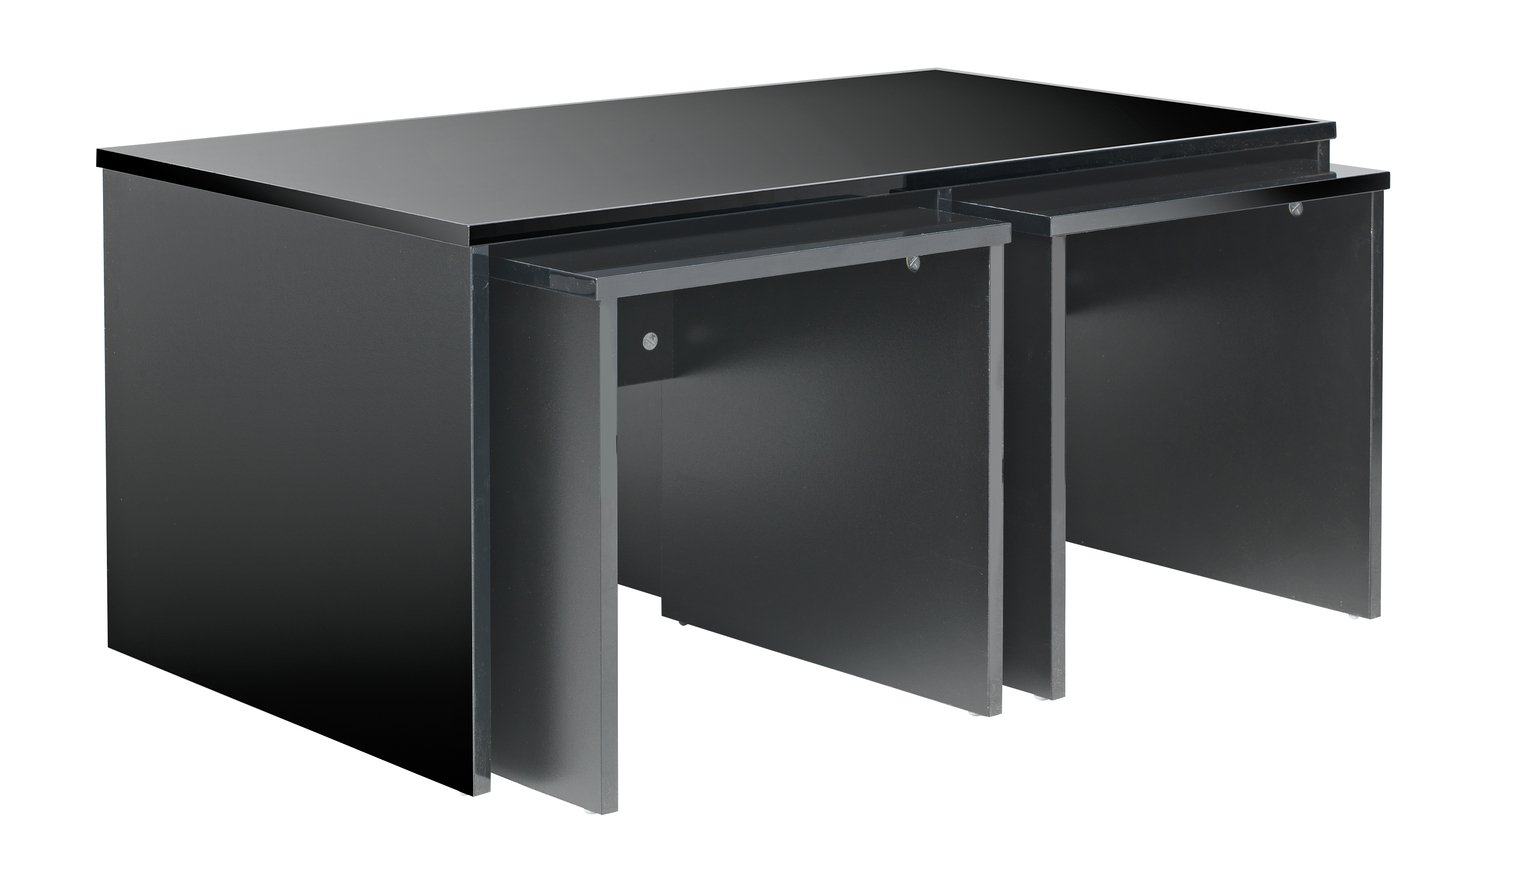 Hygena Hayward Large Table and Two Small Tables - Black at Argos from Hygena